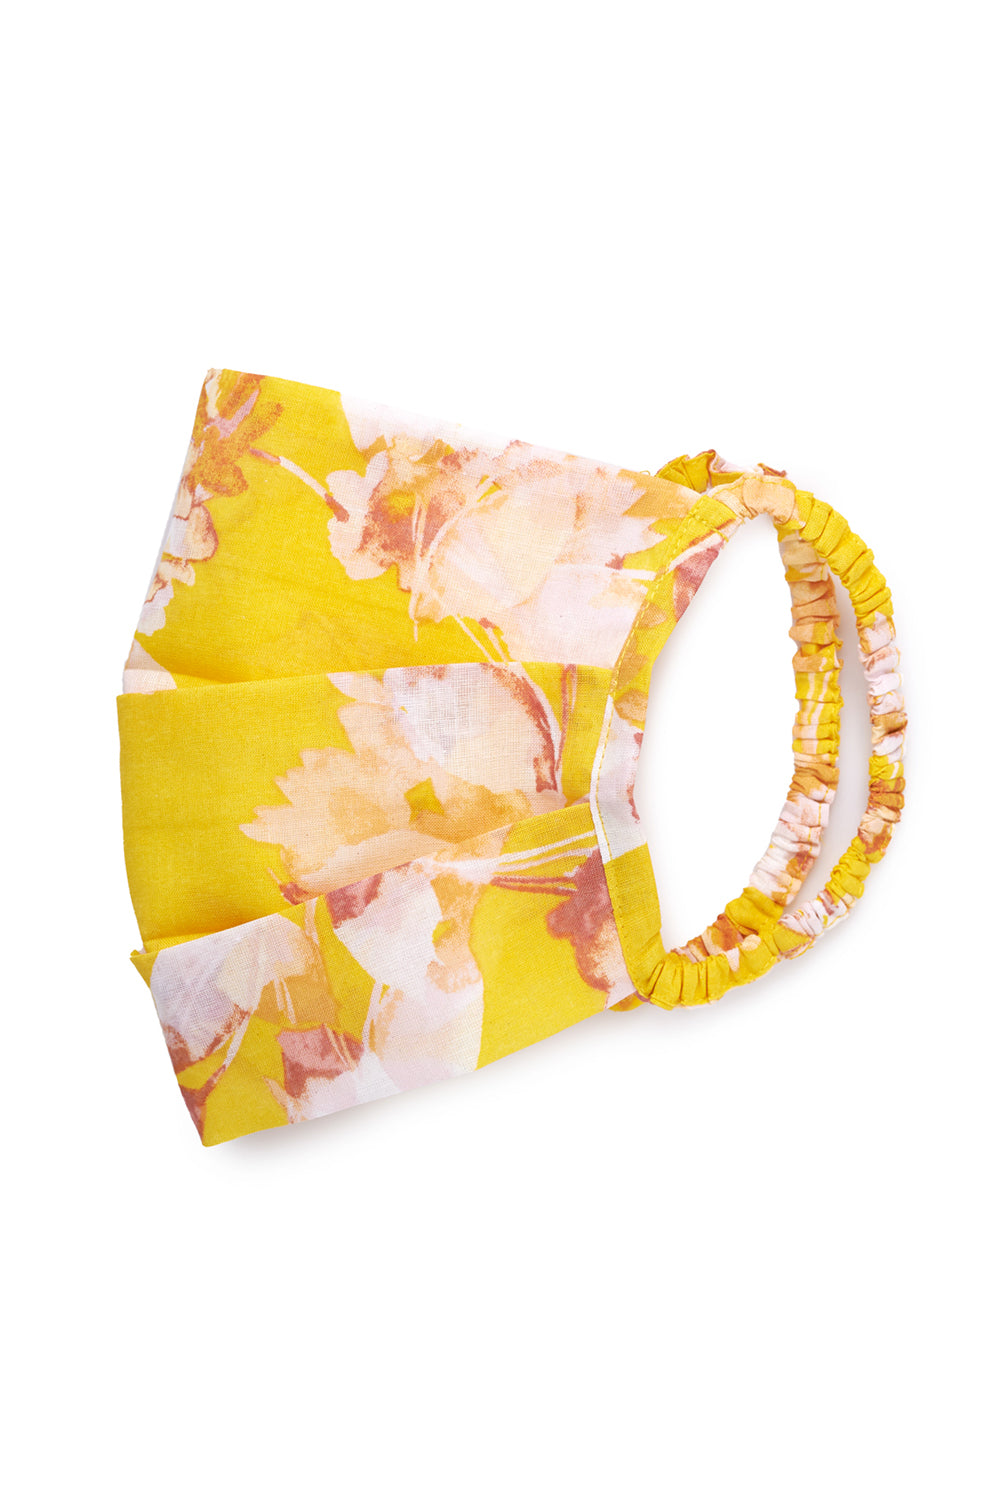 3-PACK SCRUNCHIE FACE MASKS - FLORAL FISH COMBO - MISA Los Angeles